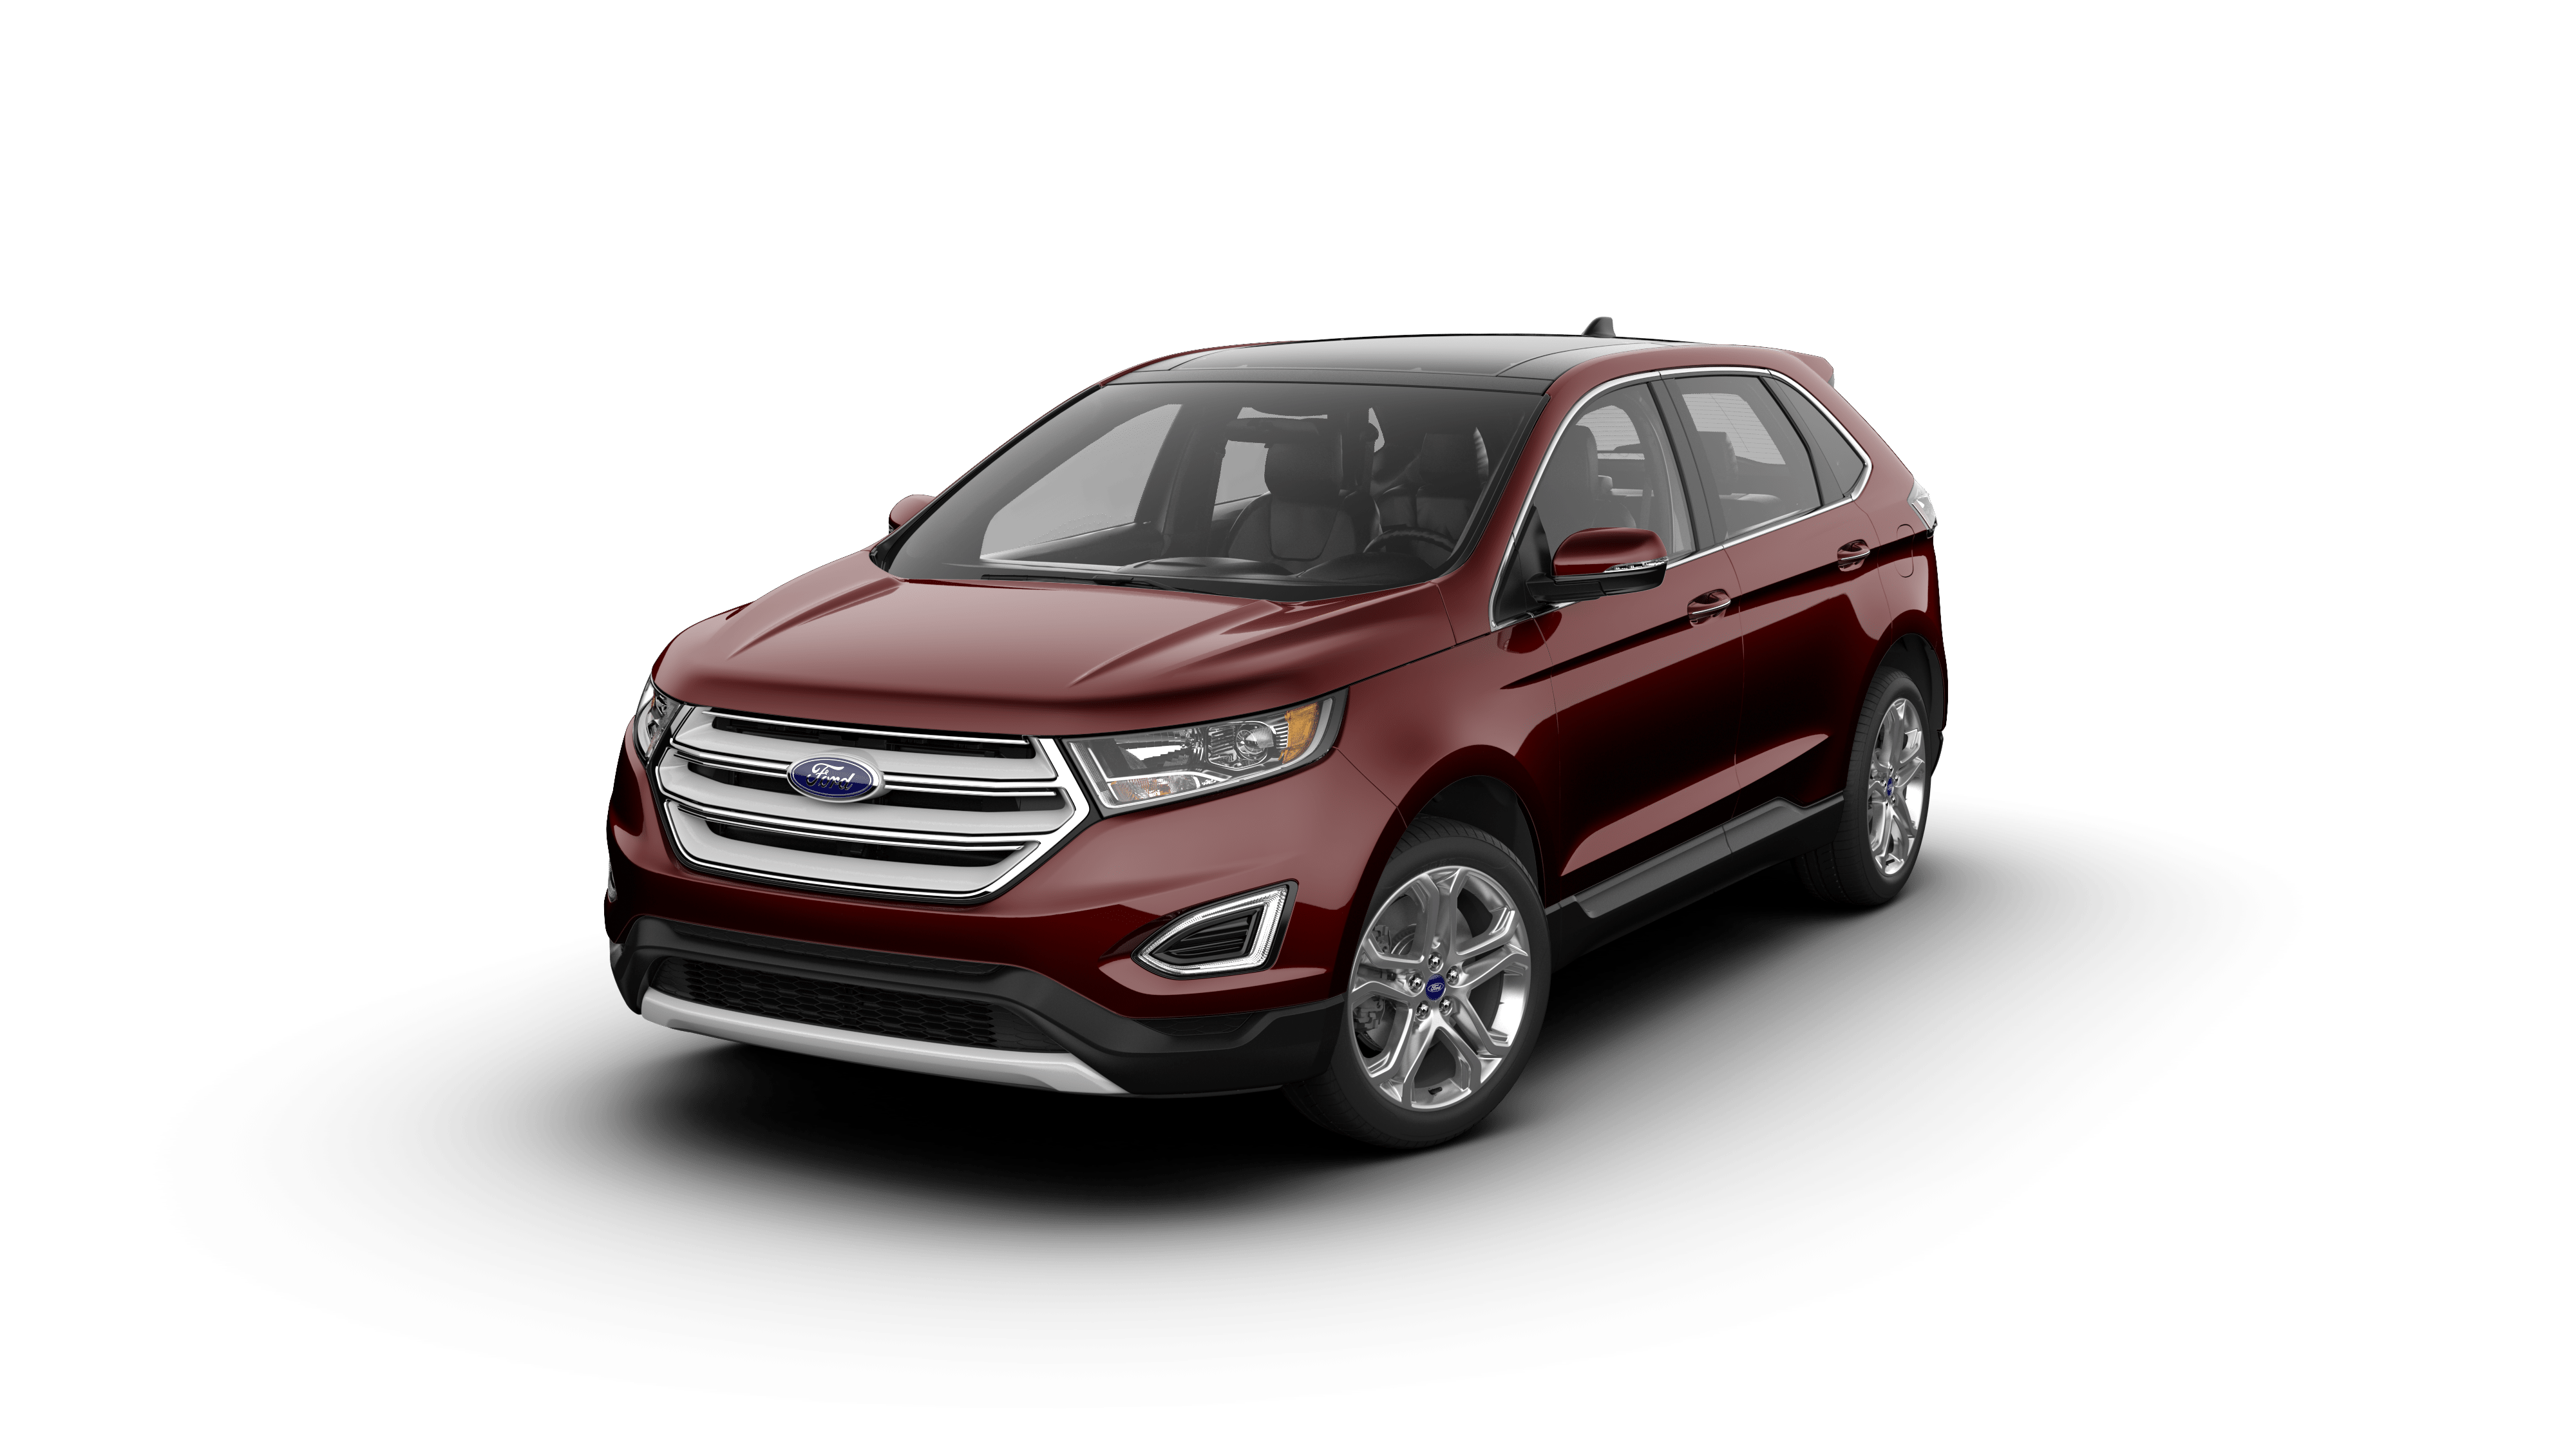 new 2018 ford edge titanium awd for sale in souderton pa jbb77299. Black Bedroom Furniture Sets. Home Design Ideas